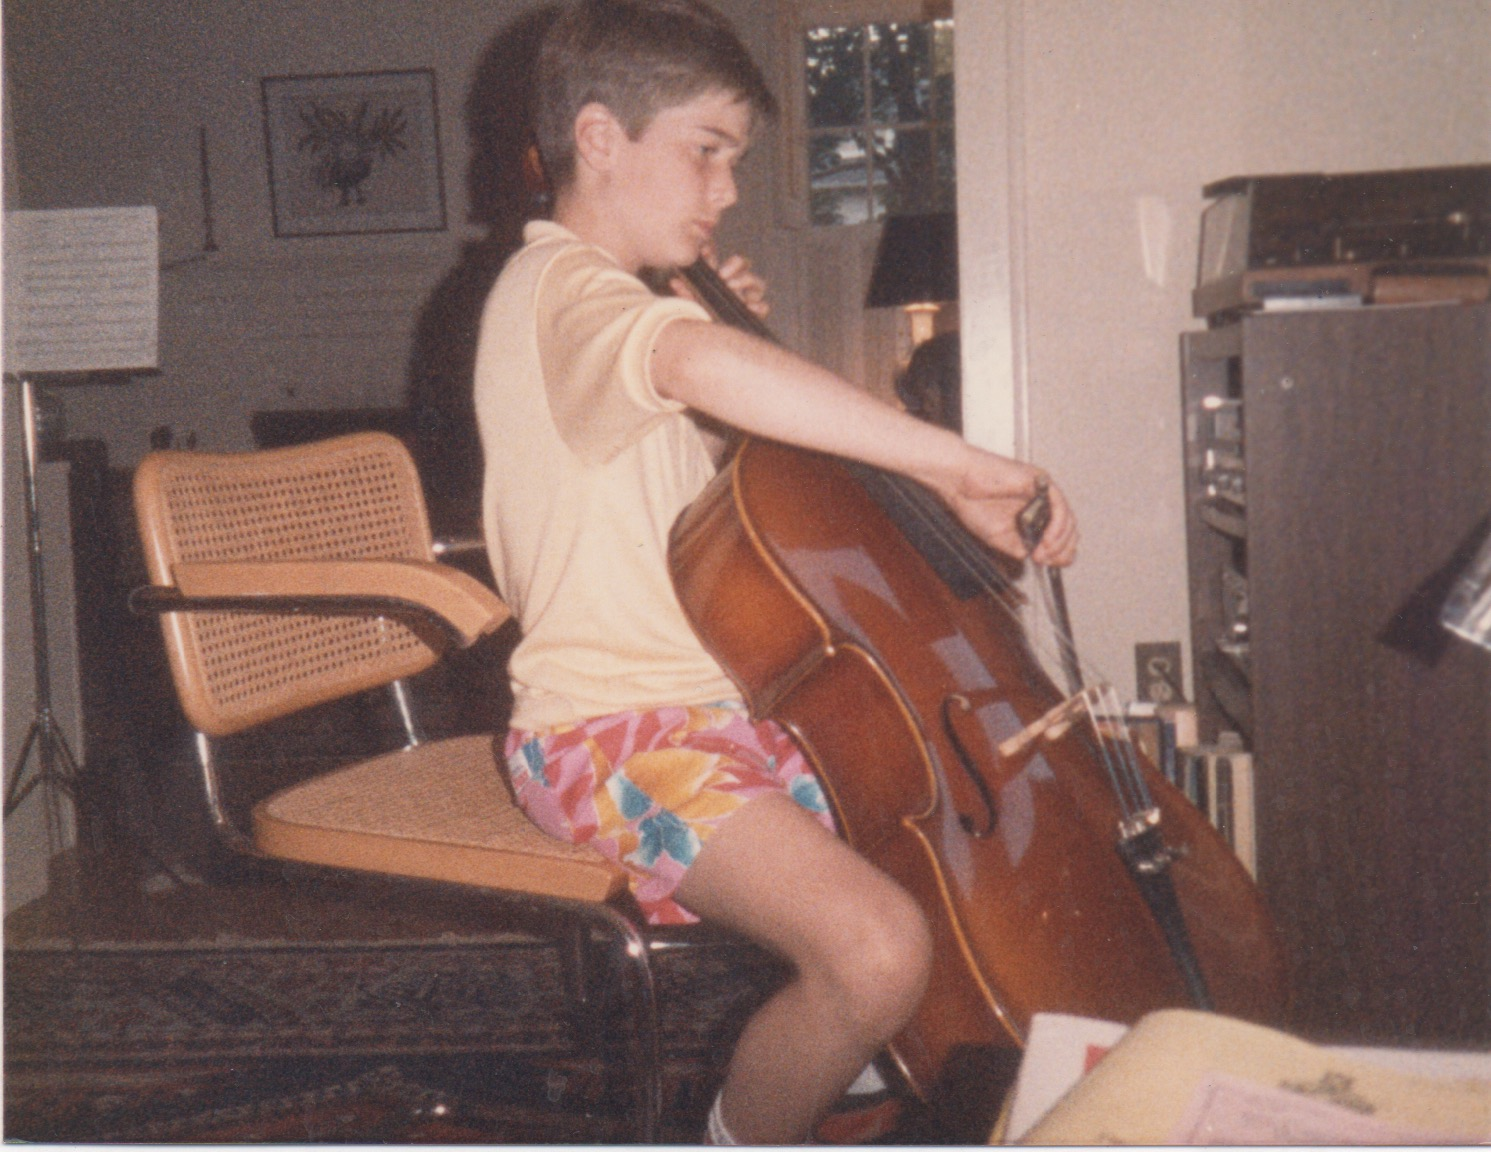 1987 - Washington D.C. I was studying cello and had composed a piece (duo with my brother on violin) for my Dad's 40th birthday